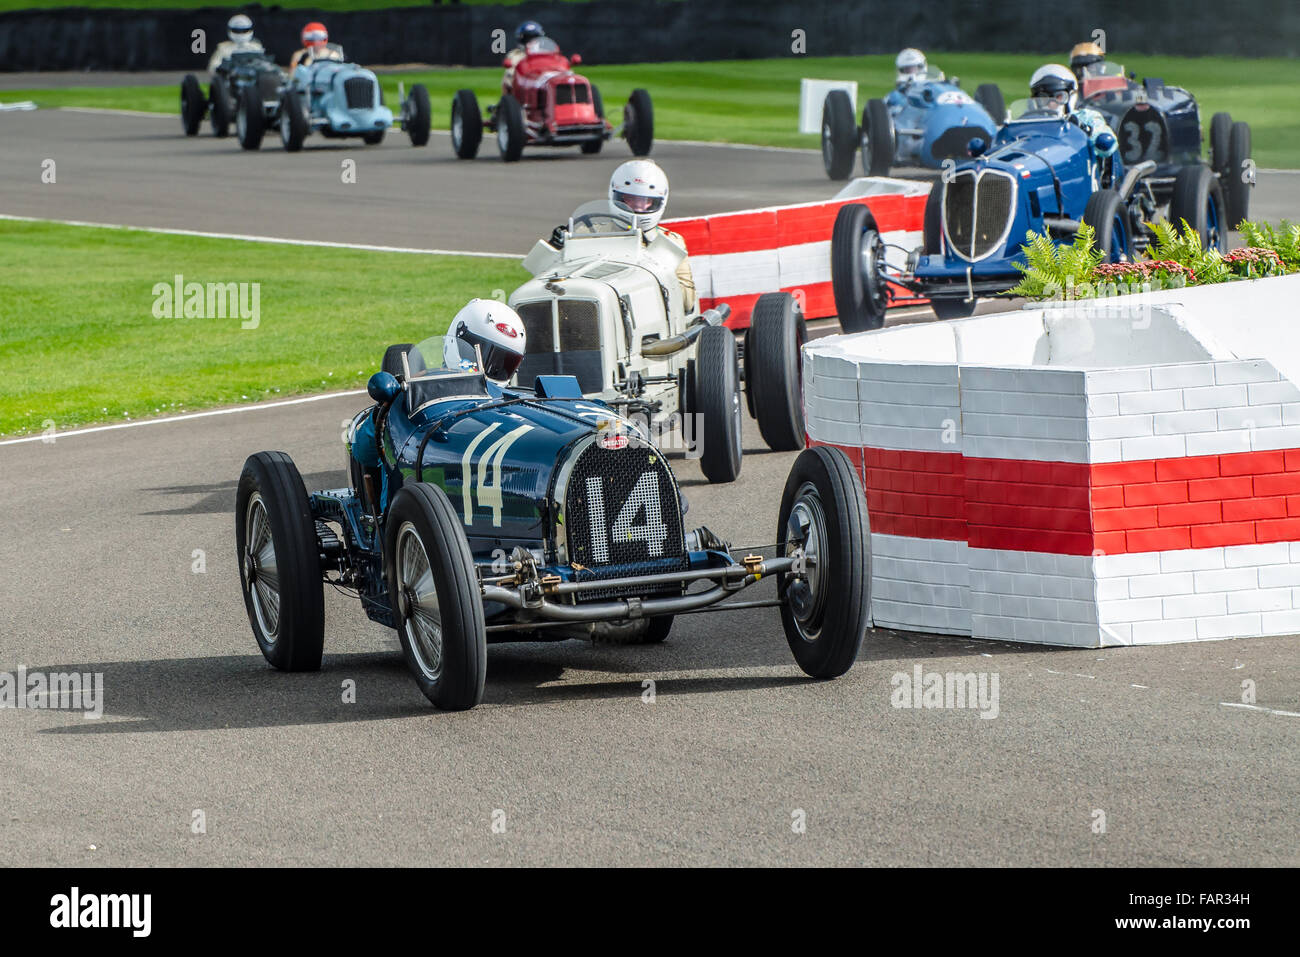 1934 Bugatti Type 59 owned by Charles McCabe and was raced by Charles Knill-Jones at the Goodwood Revival 2015 - Stock Image